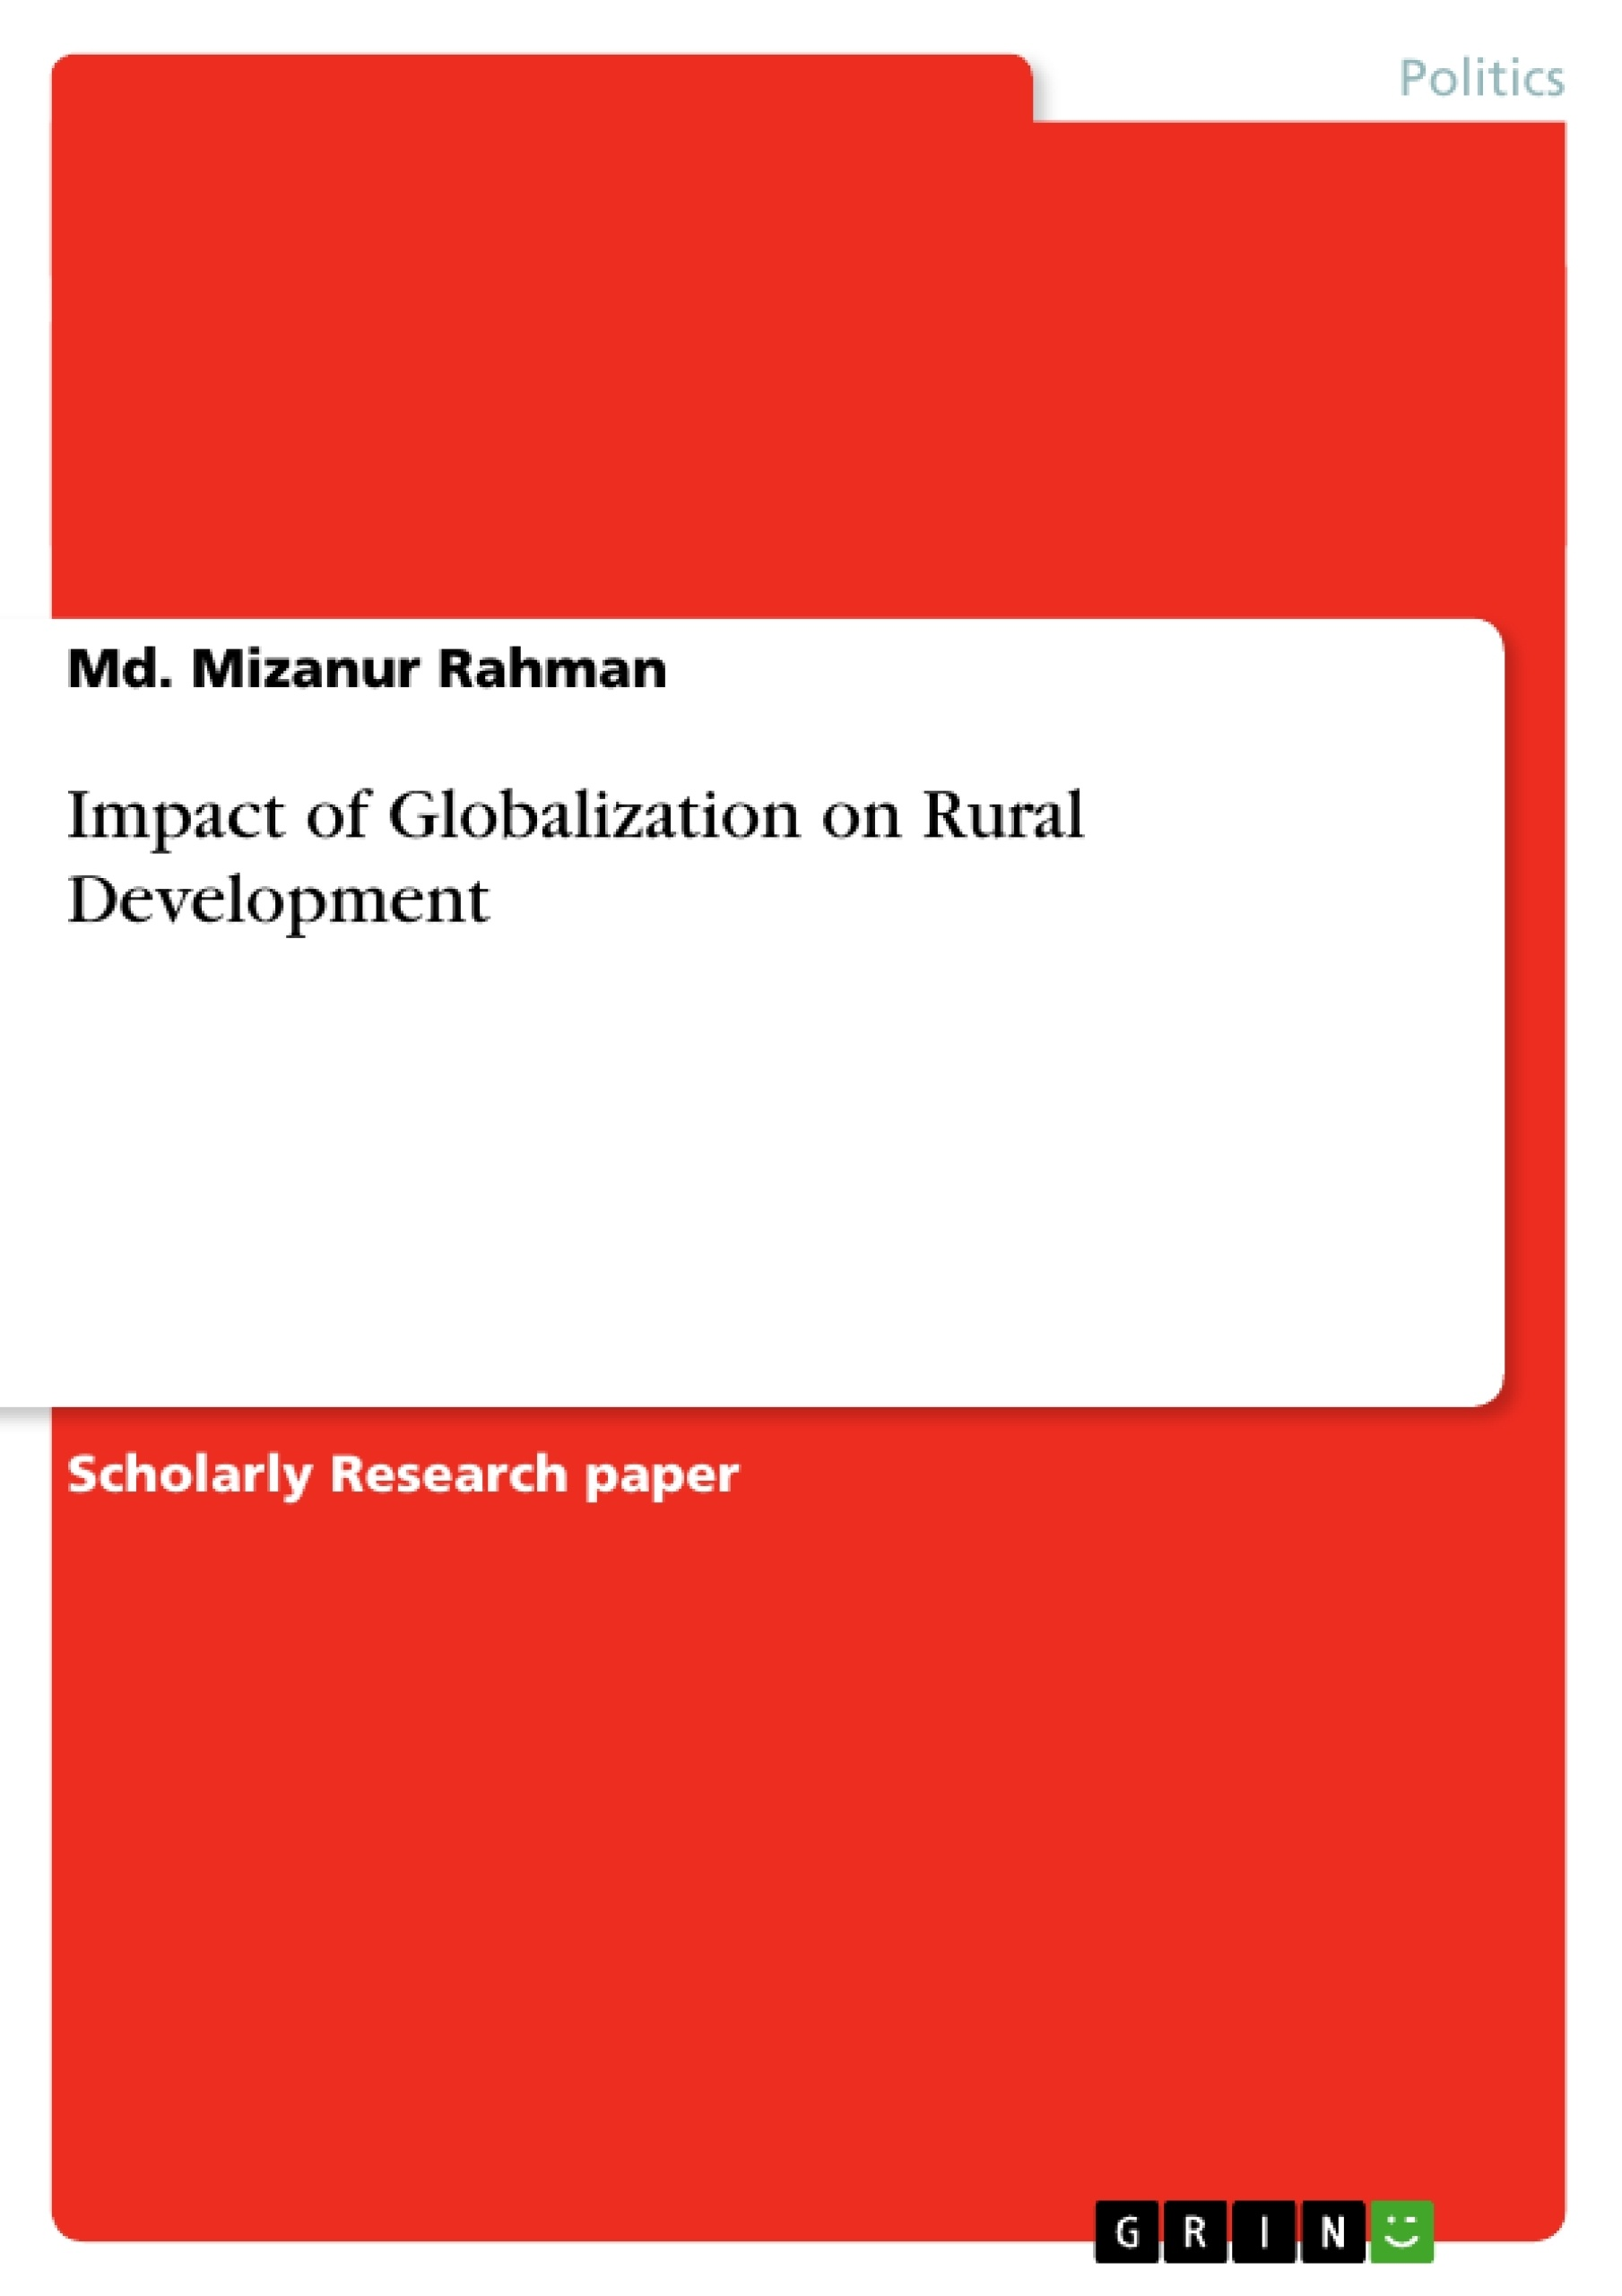 impact of globalization on rural development publish your impact of globalization on rural development publish your master s thesis bachelor s thesis essay or term paper